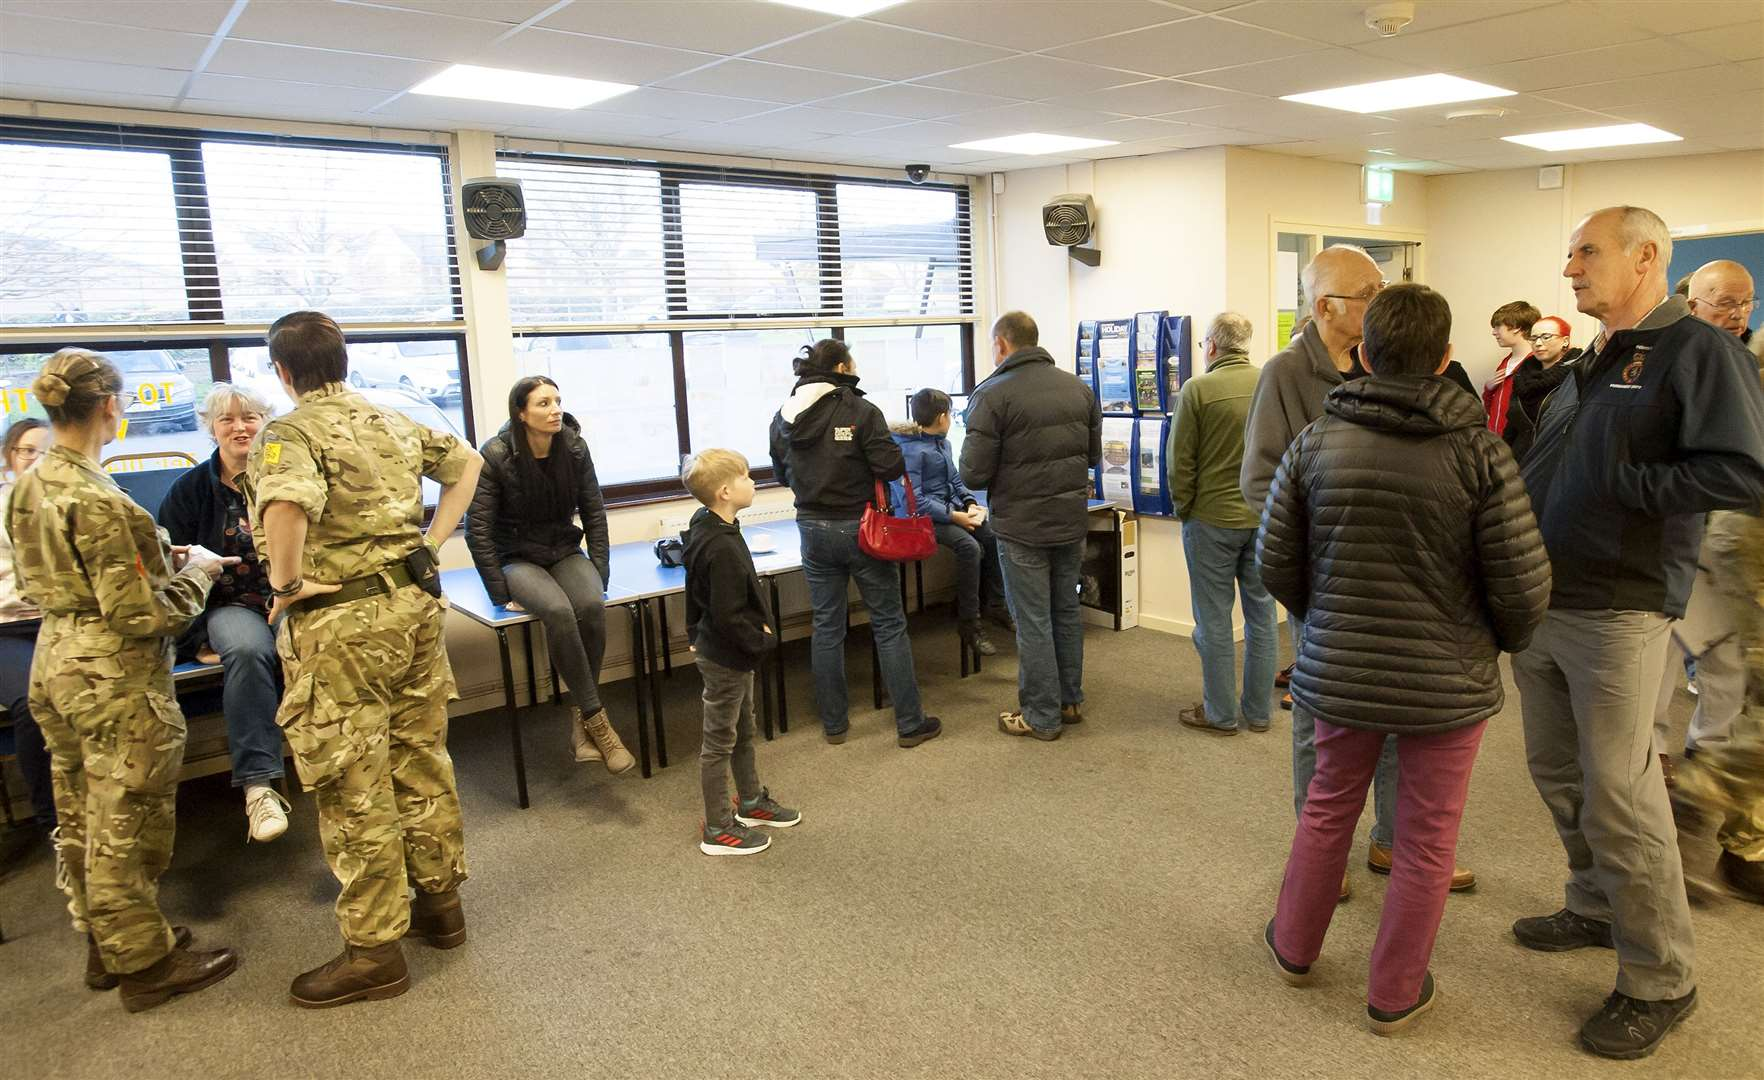 An open night at Hunstanton Community Centre